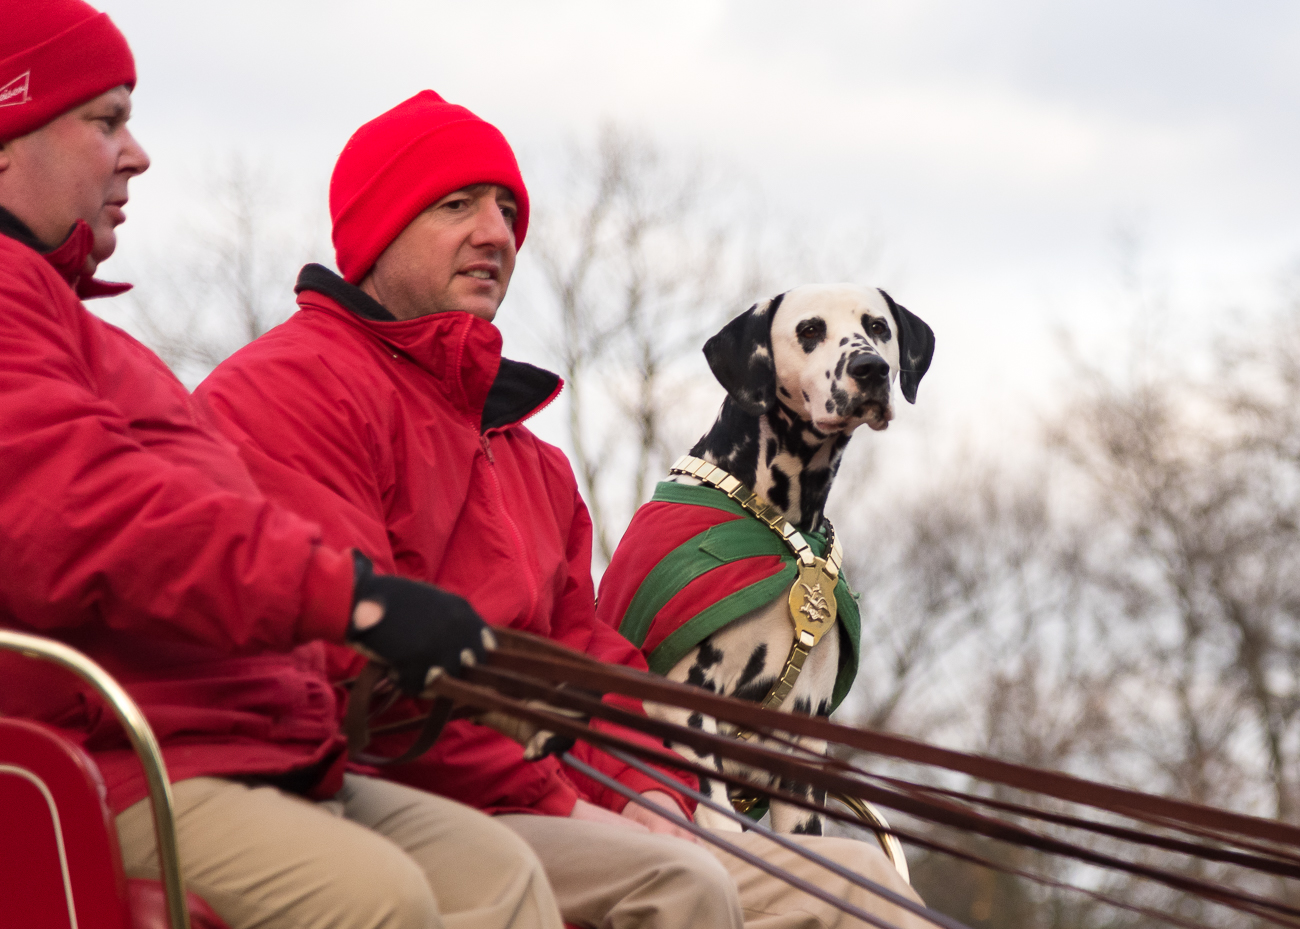 <p>A Dalmatian accompanied the Budweiser Clydesdales, who made a rare stop in Bellevue at the Party Source on November 28. / Image: Phil Armstrong, Cincinnati Refined // Published: 11.30.18</p>